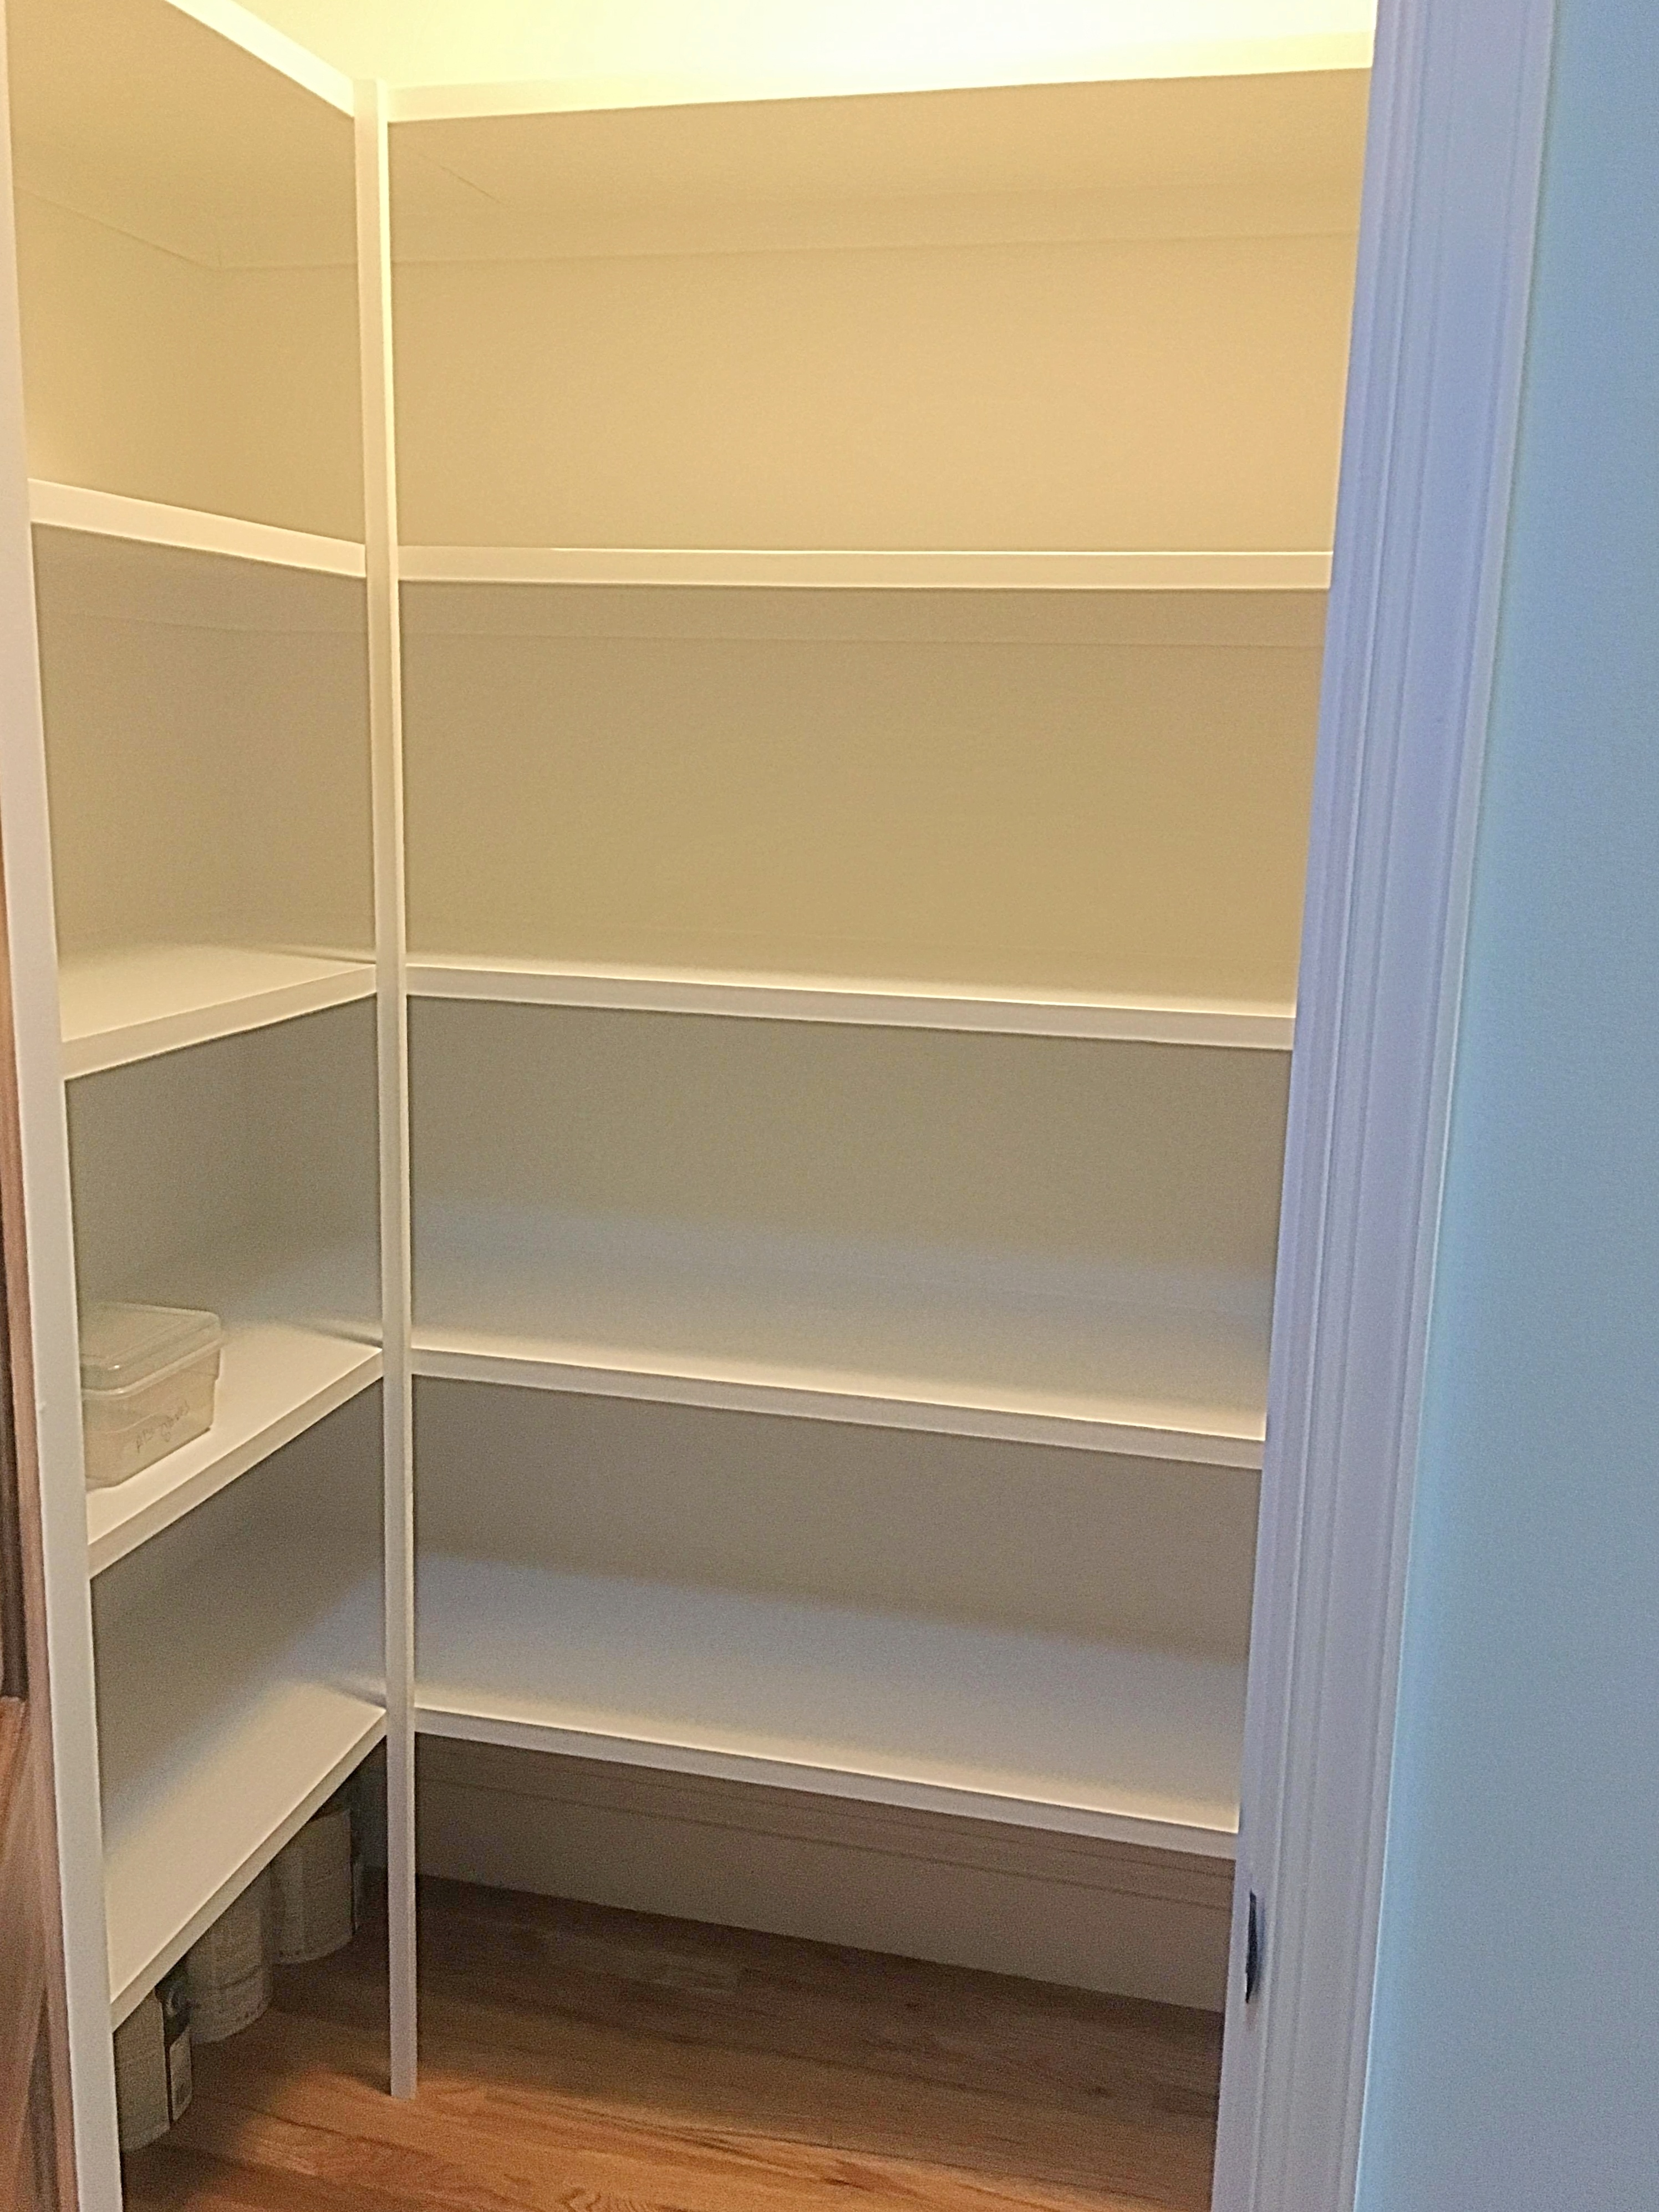 little-love-remodel-exton-reveal-pantry.jpg